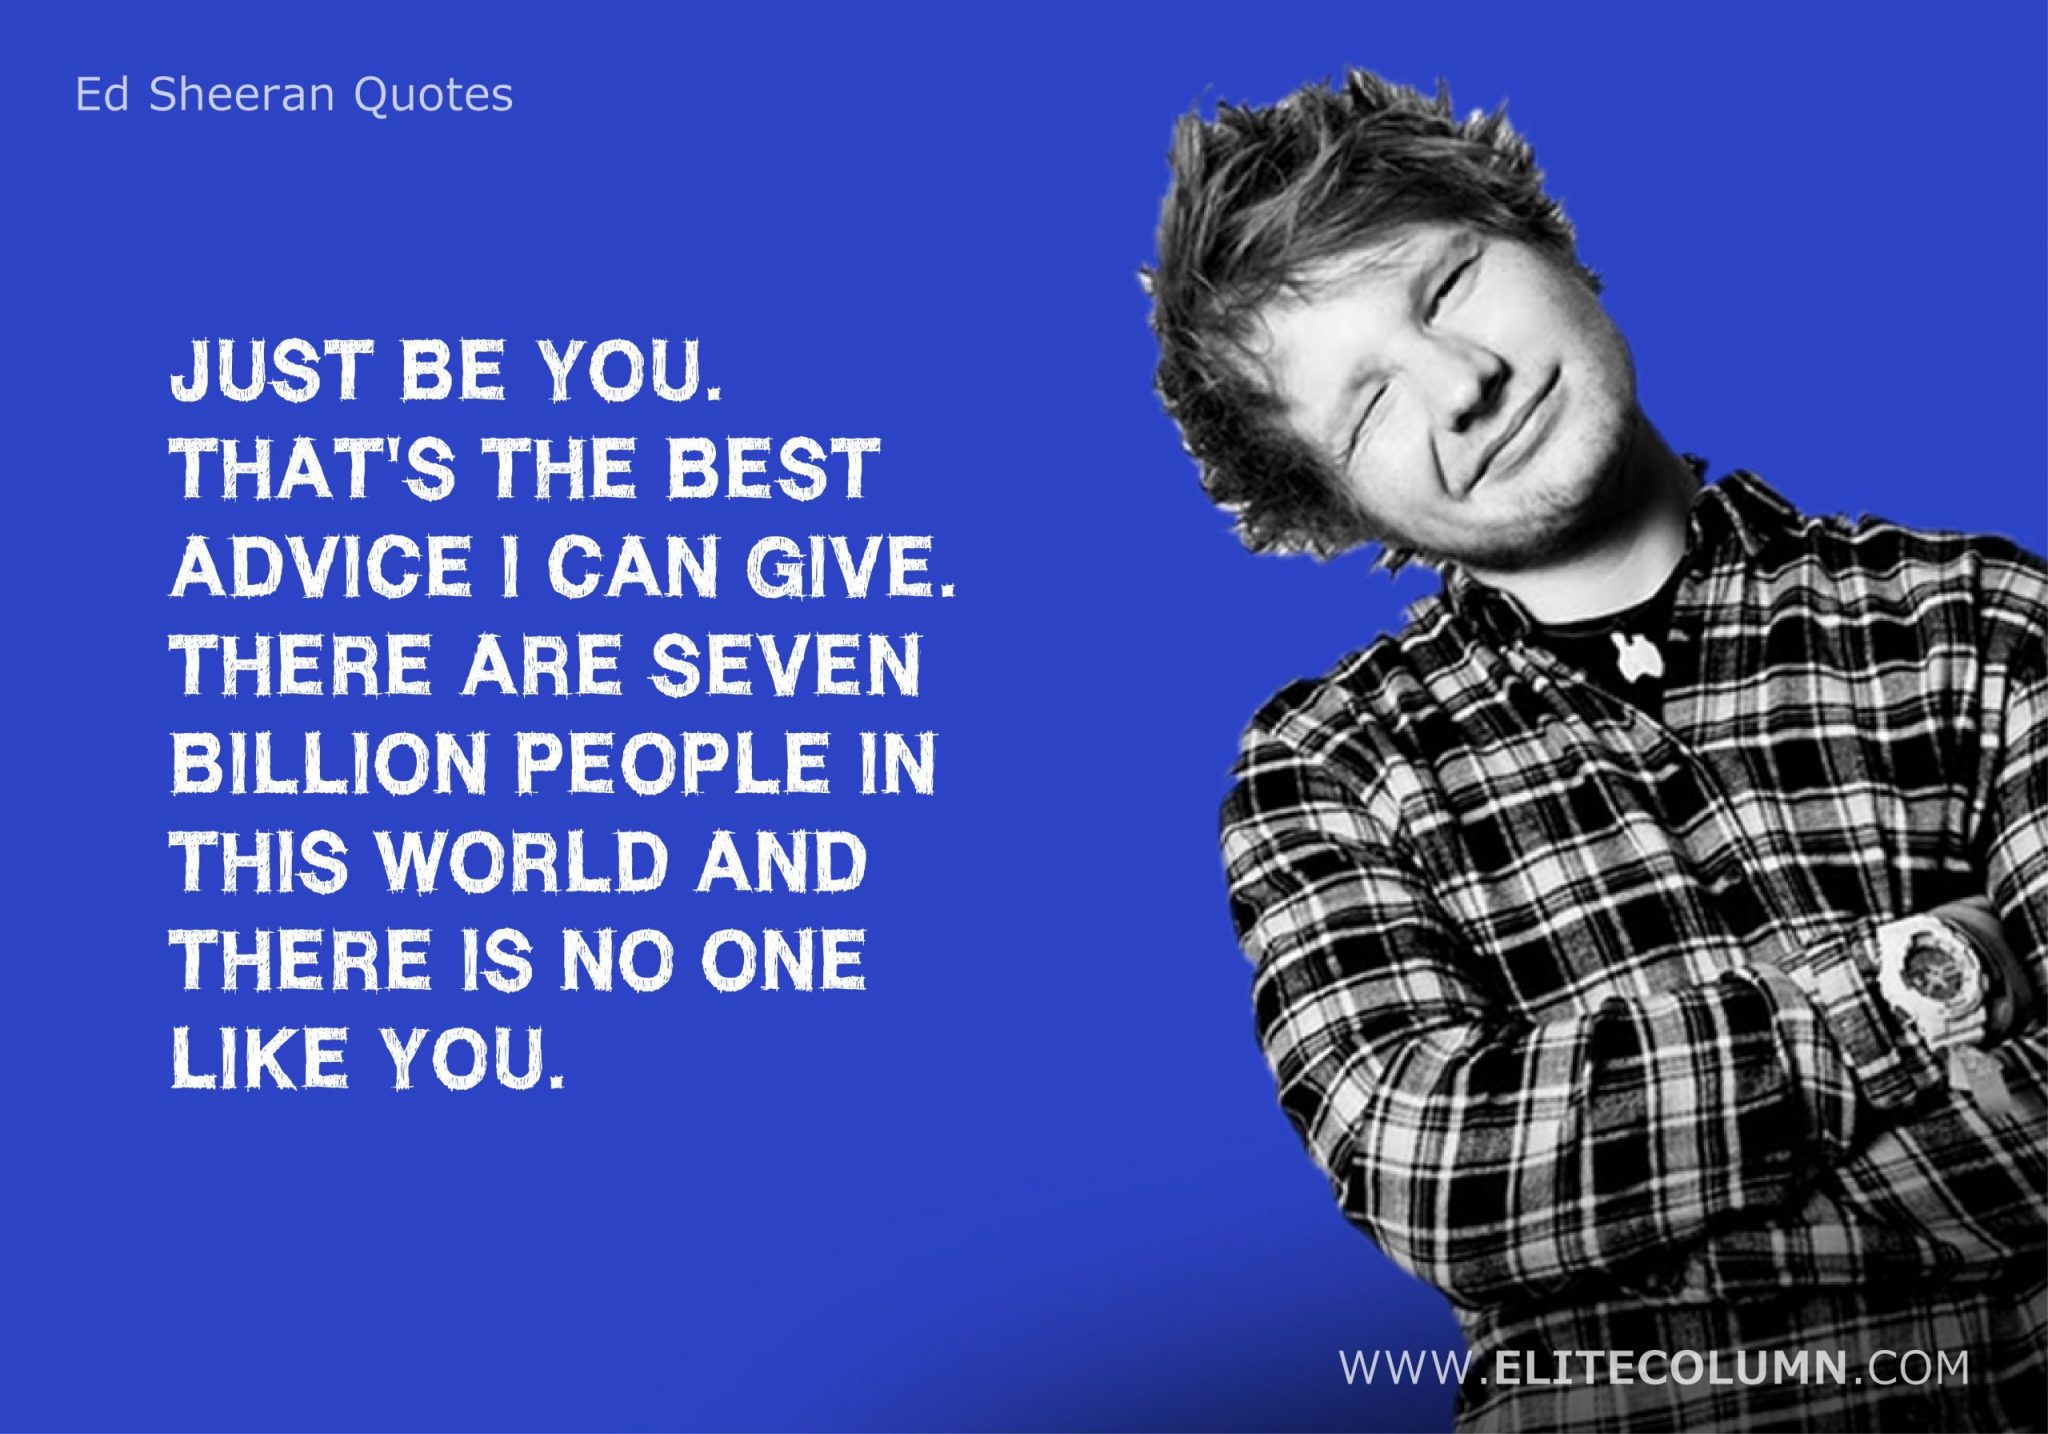 Ed Sheeran Quotes (20)